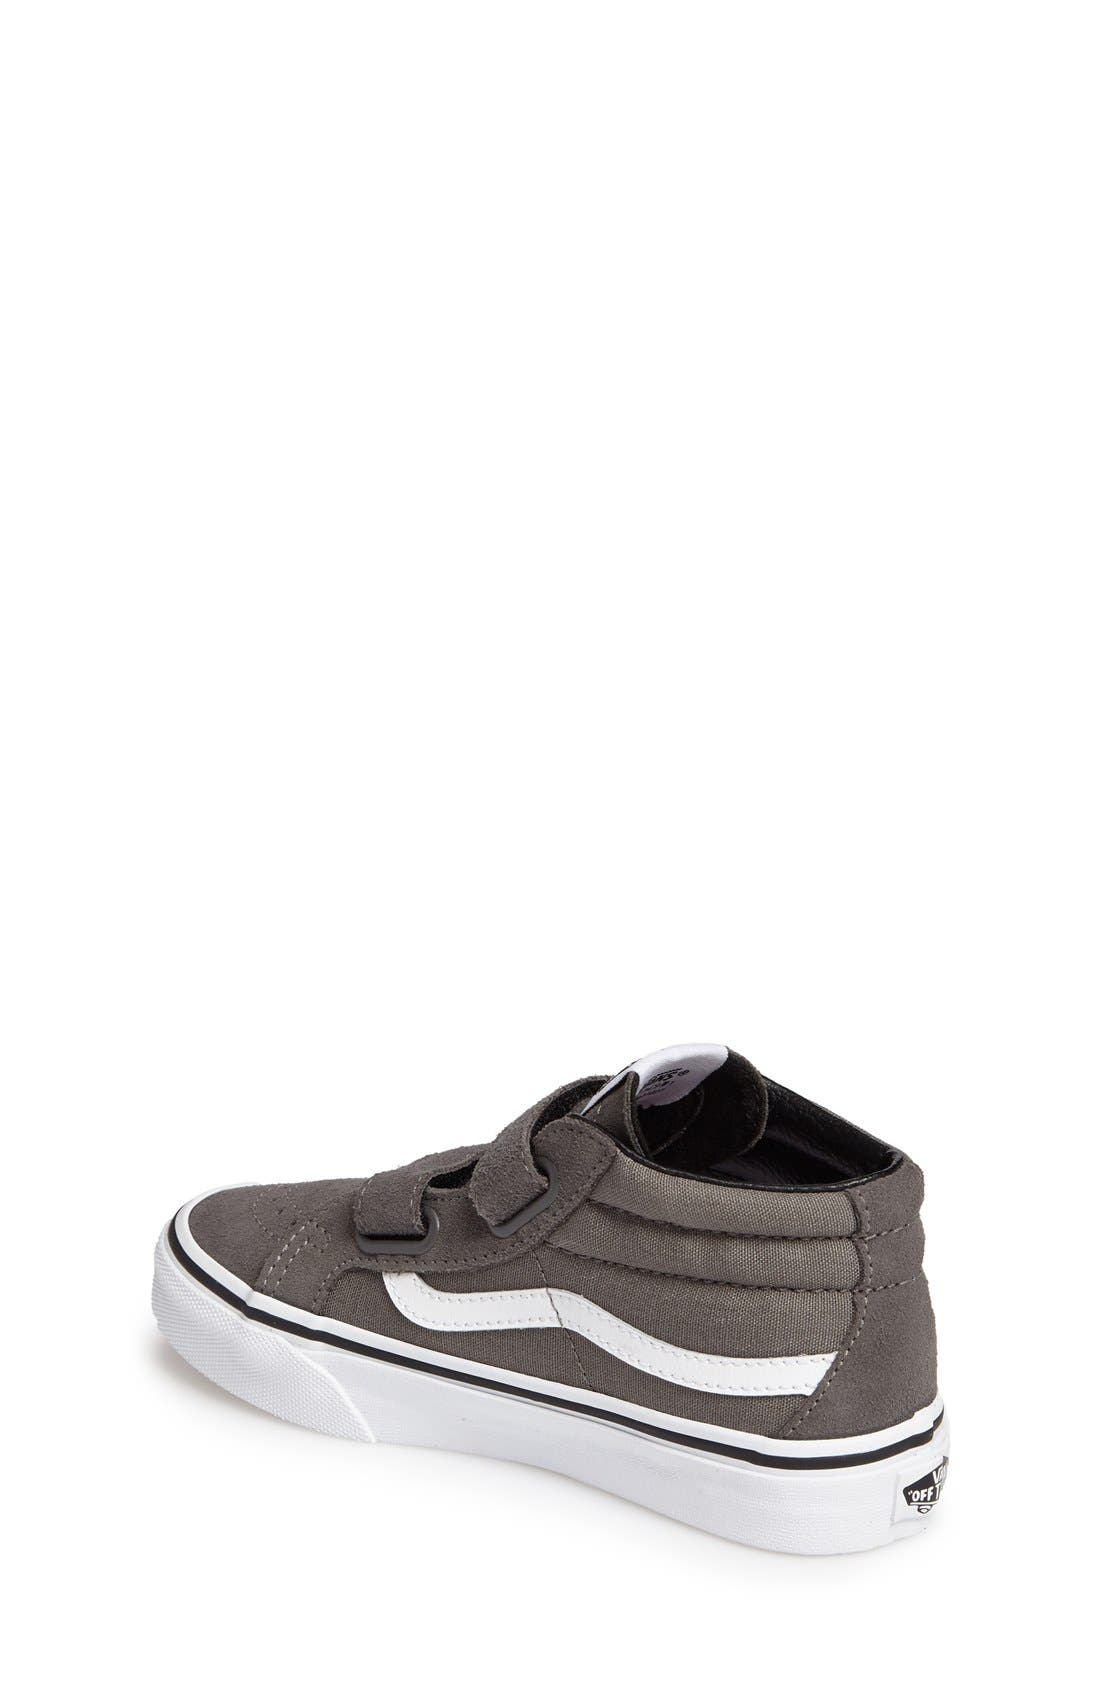 SK8 Mid-Top Reissue Sneaker,                             Alternate thumbnail 2, color,                             GREY FABRIC